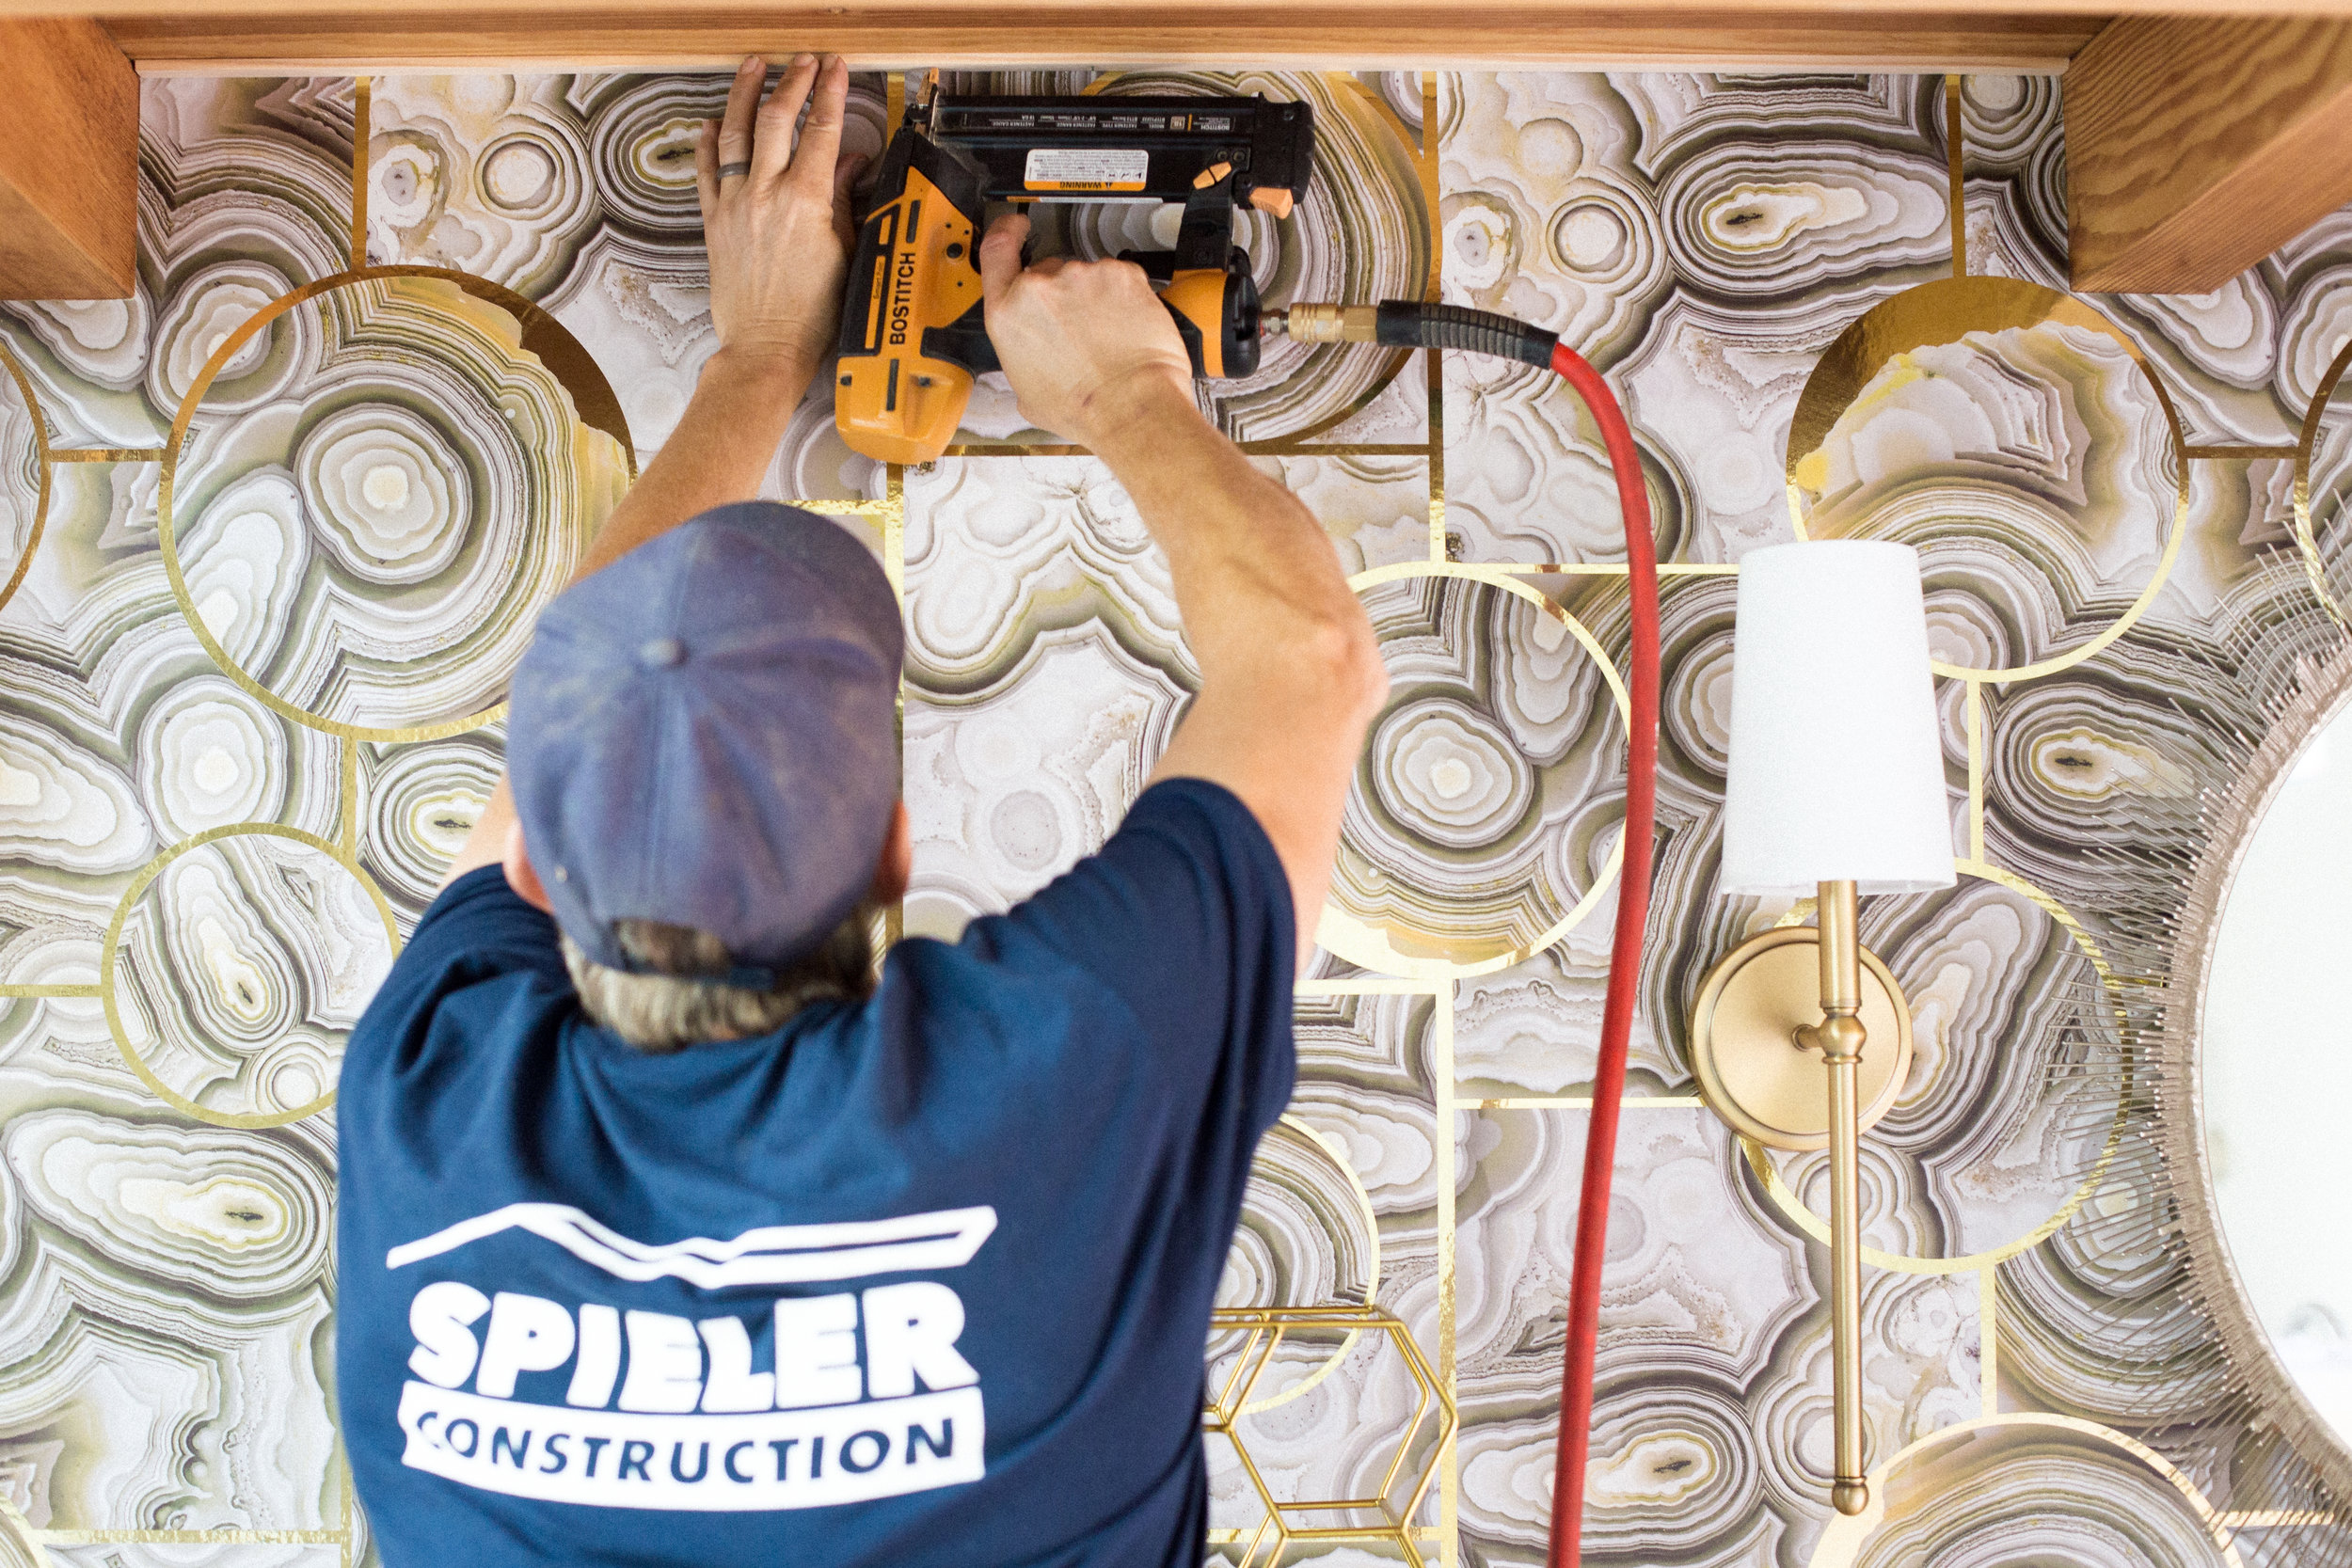 LEARN ABOUT US - Family owned, award-winning, and nationally recognized, we represent three generations of passionate builders